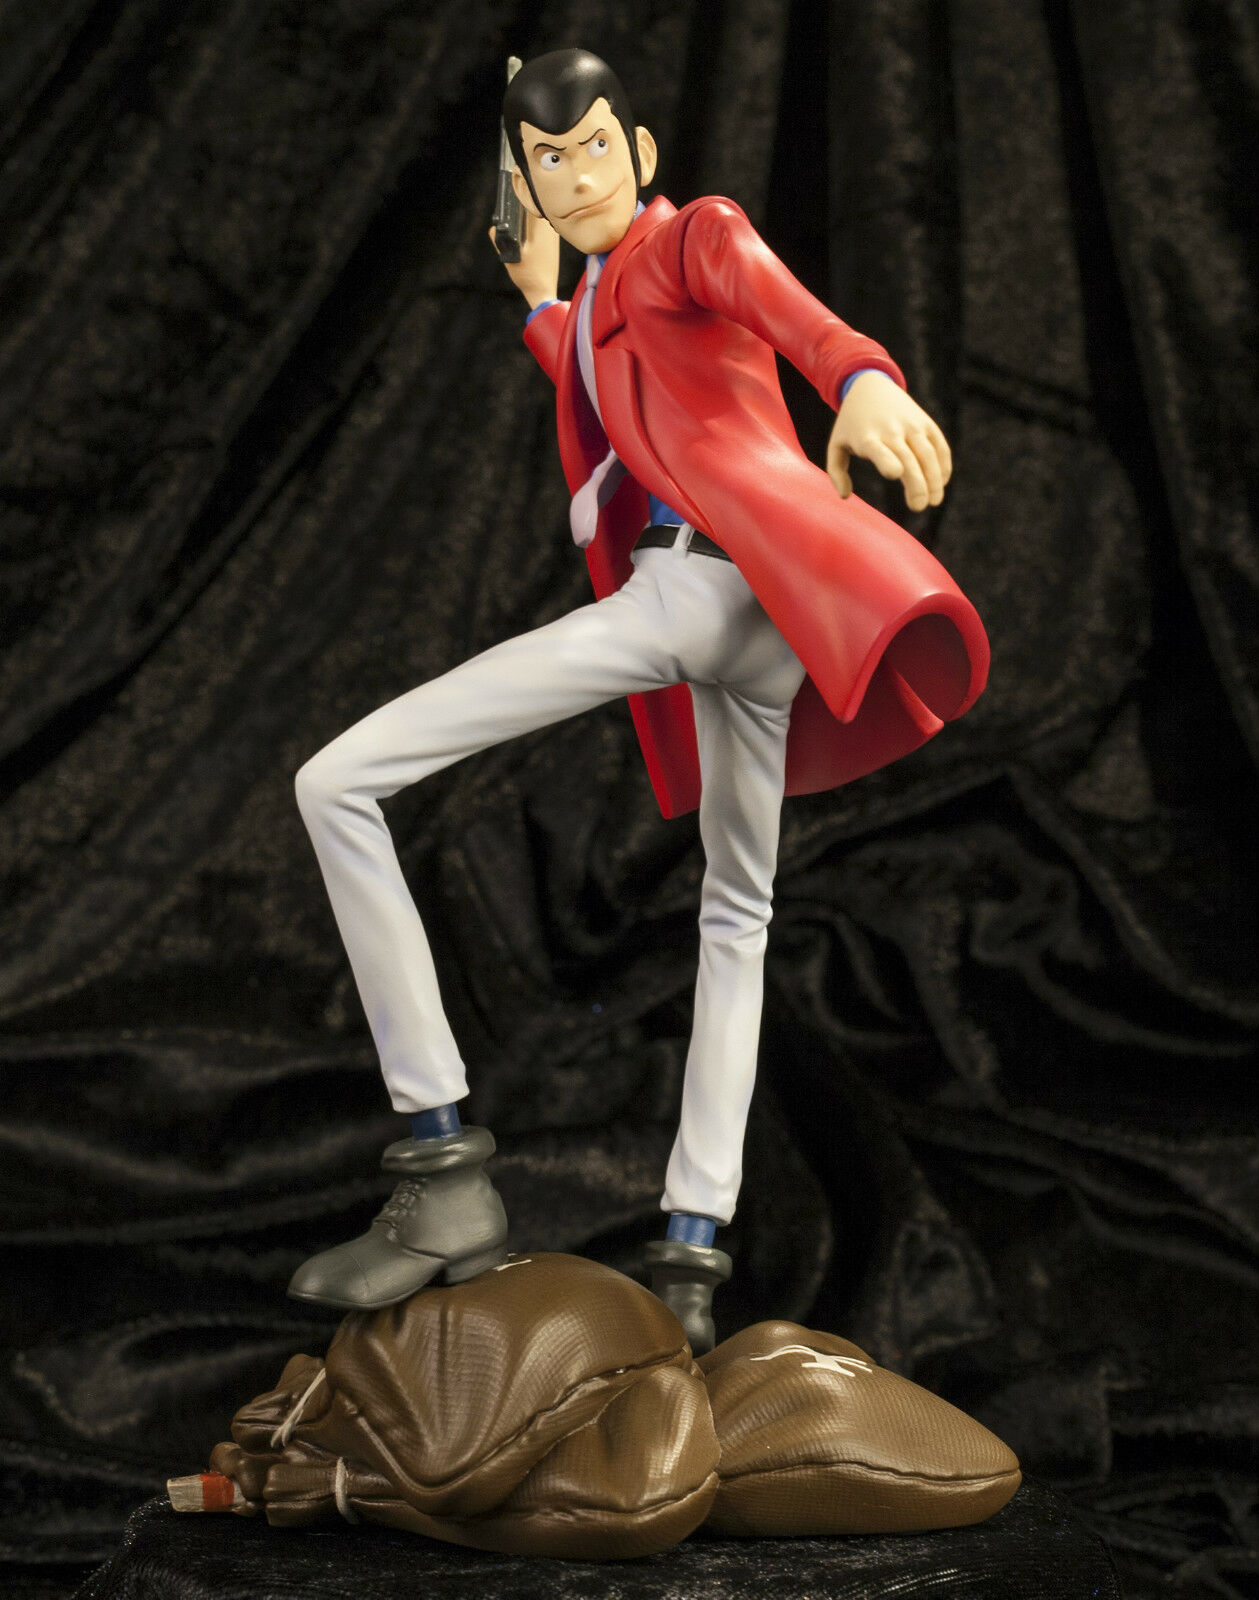 LUPIN III Statue - LIMITED EDITION - NEW - Anime Manga 23 cm - RESIN